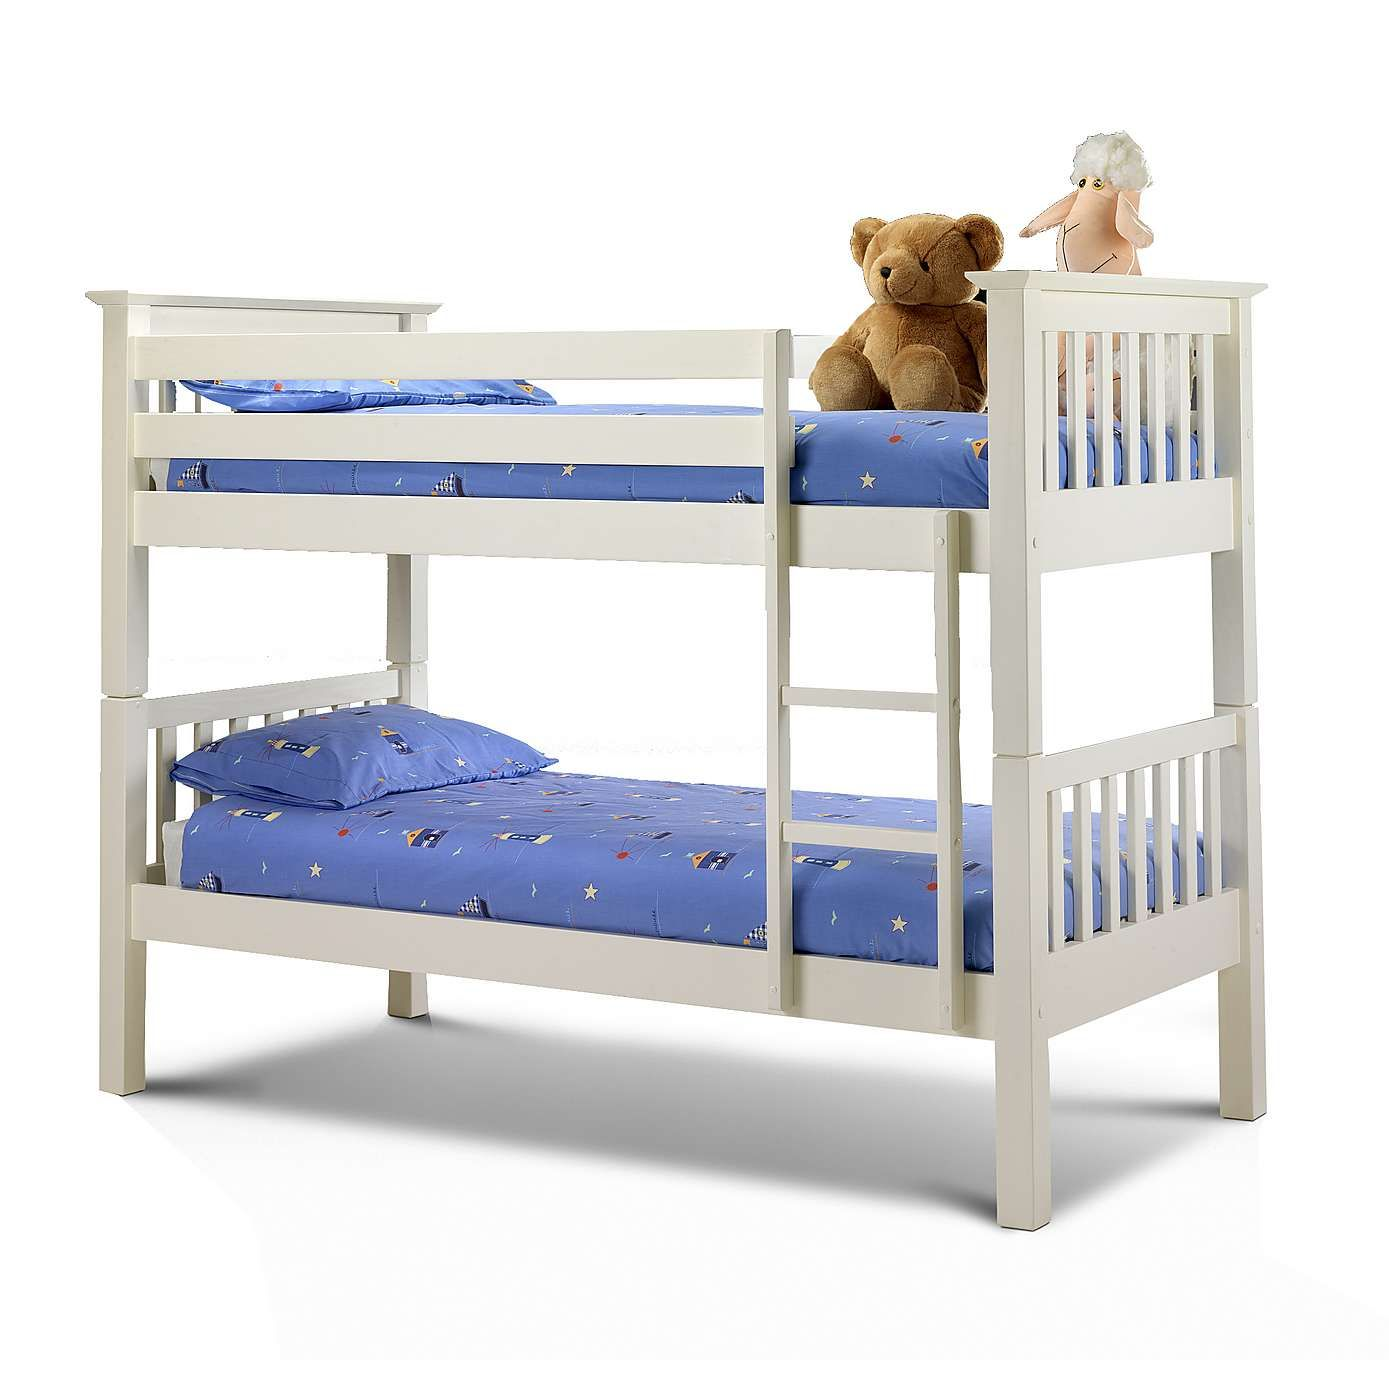 2ft 6 Cabin Bed Kids White Windsor Bunk Bed Dunelm Bedroom Small Niños